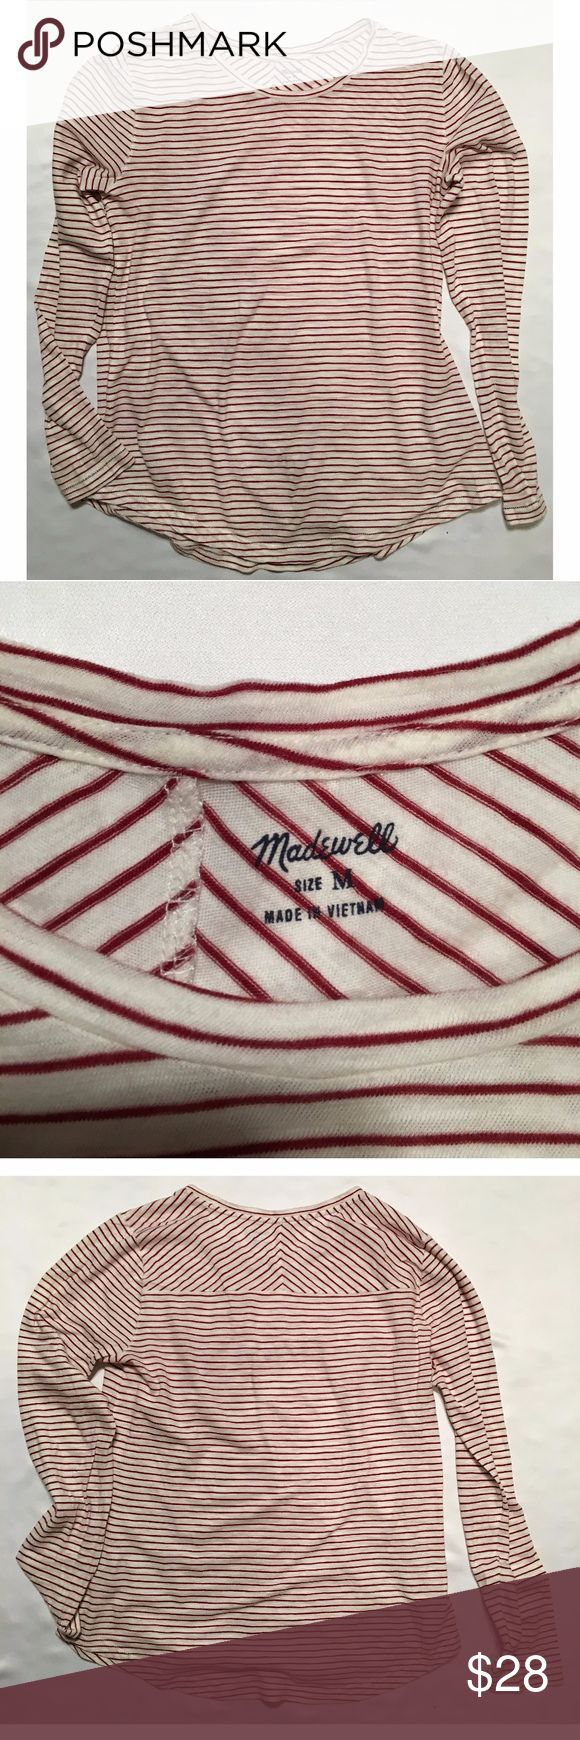 Madewell M long-sleeved red and white shirt Madewell size Medium long-sleeved red and white shirt. Great condition! Comfortable, cute on its own or layered under a sweater, maybe dark gray. Madewell Tops Tees - Long Sleeve